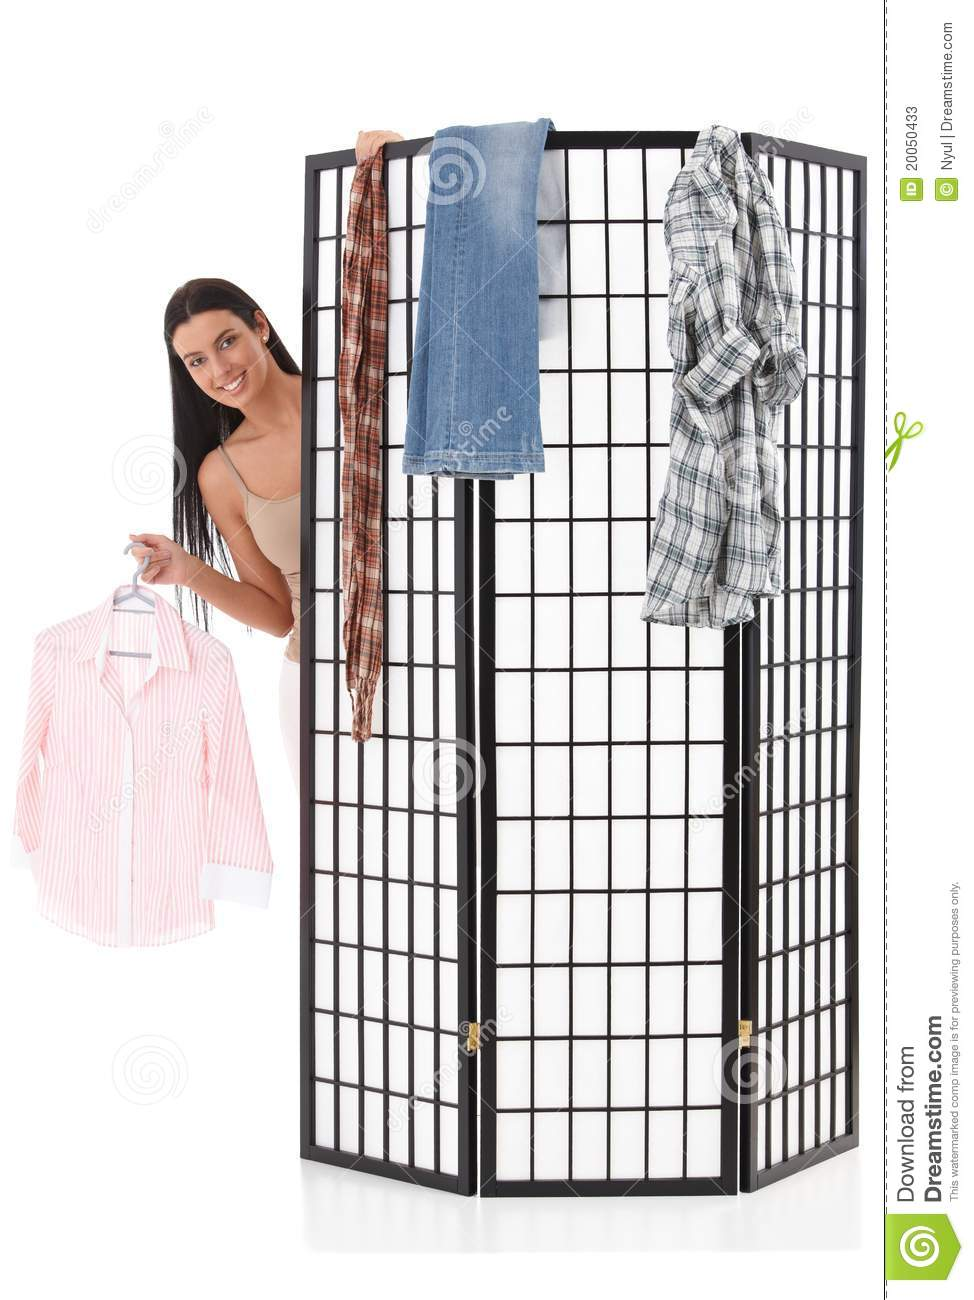 Cheerful girl dressing up behind dressing panel